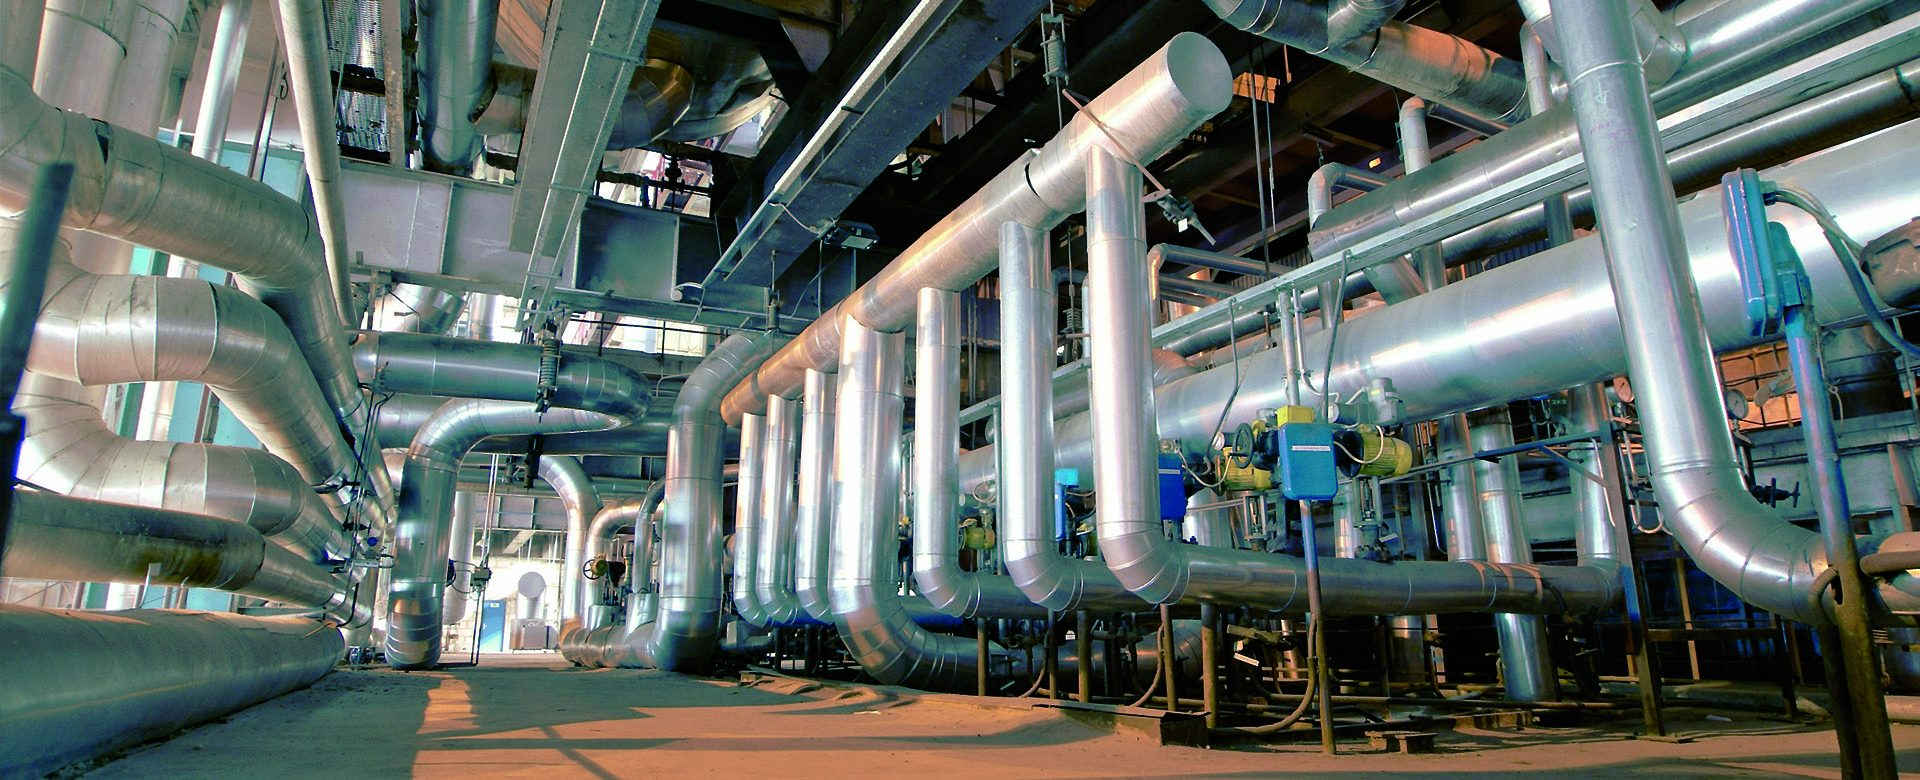 24/7 Commercial Plumbing in Perth